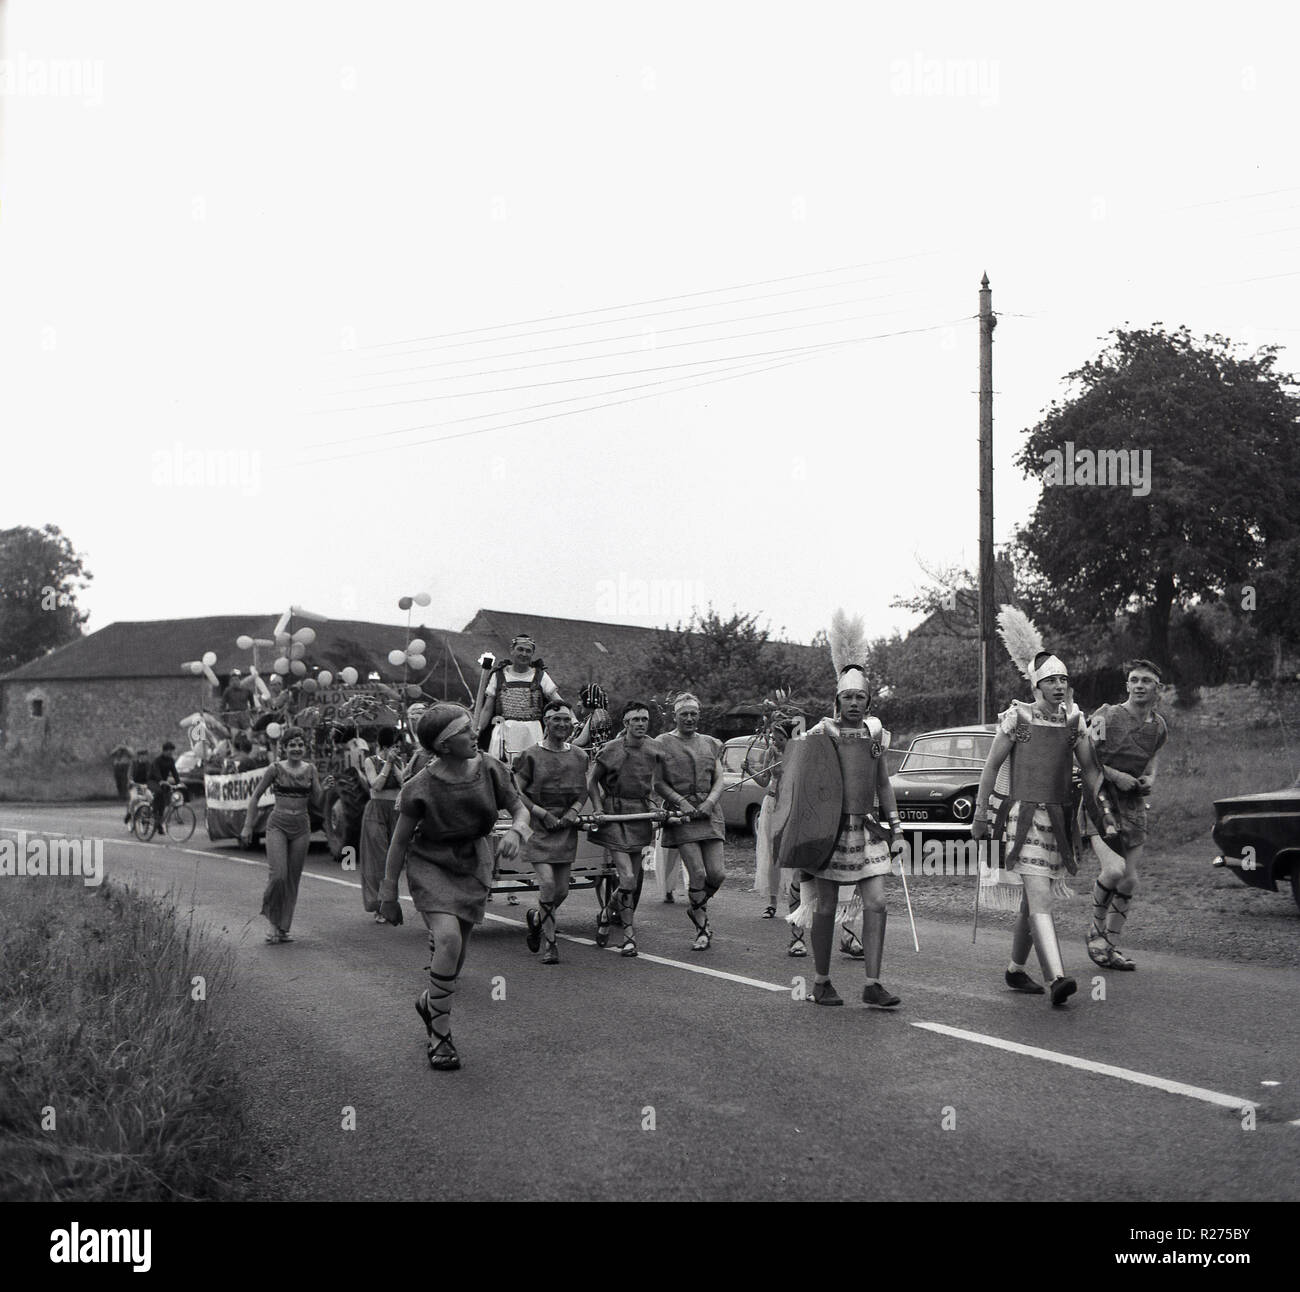 1967, historical, English village carnival, people dressed up as Roman centurions walking along a country road as they take part in a local village parade, Oxfordshire, England, UK. - Stock Image